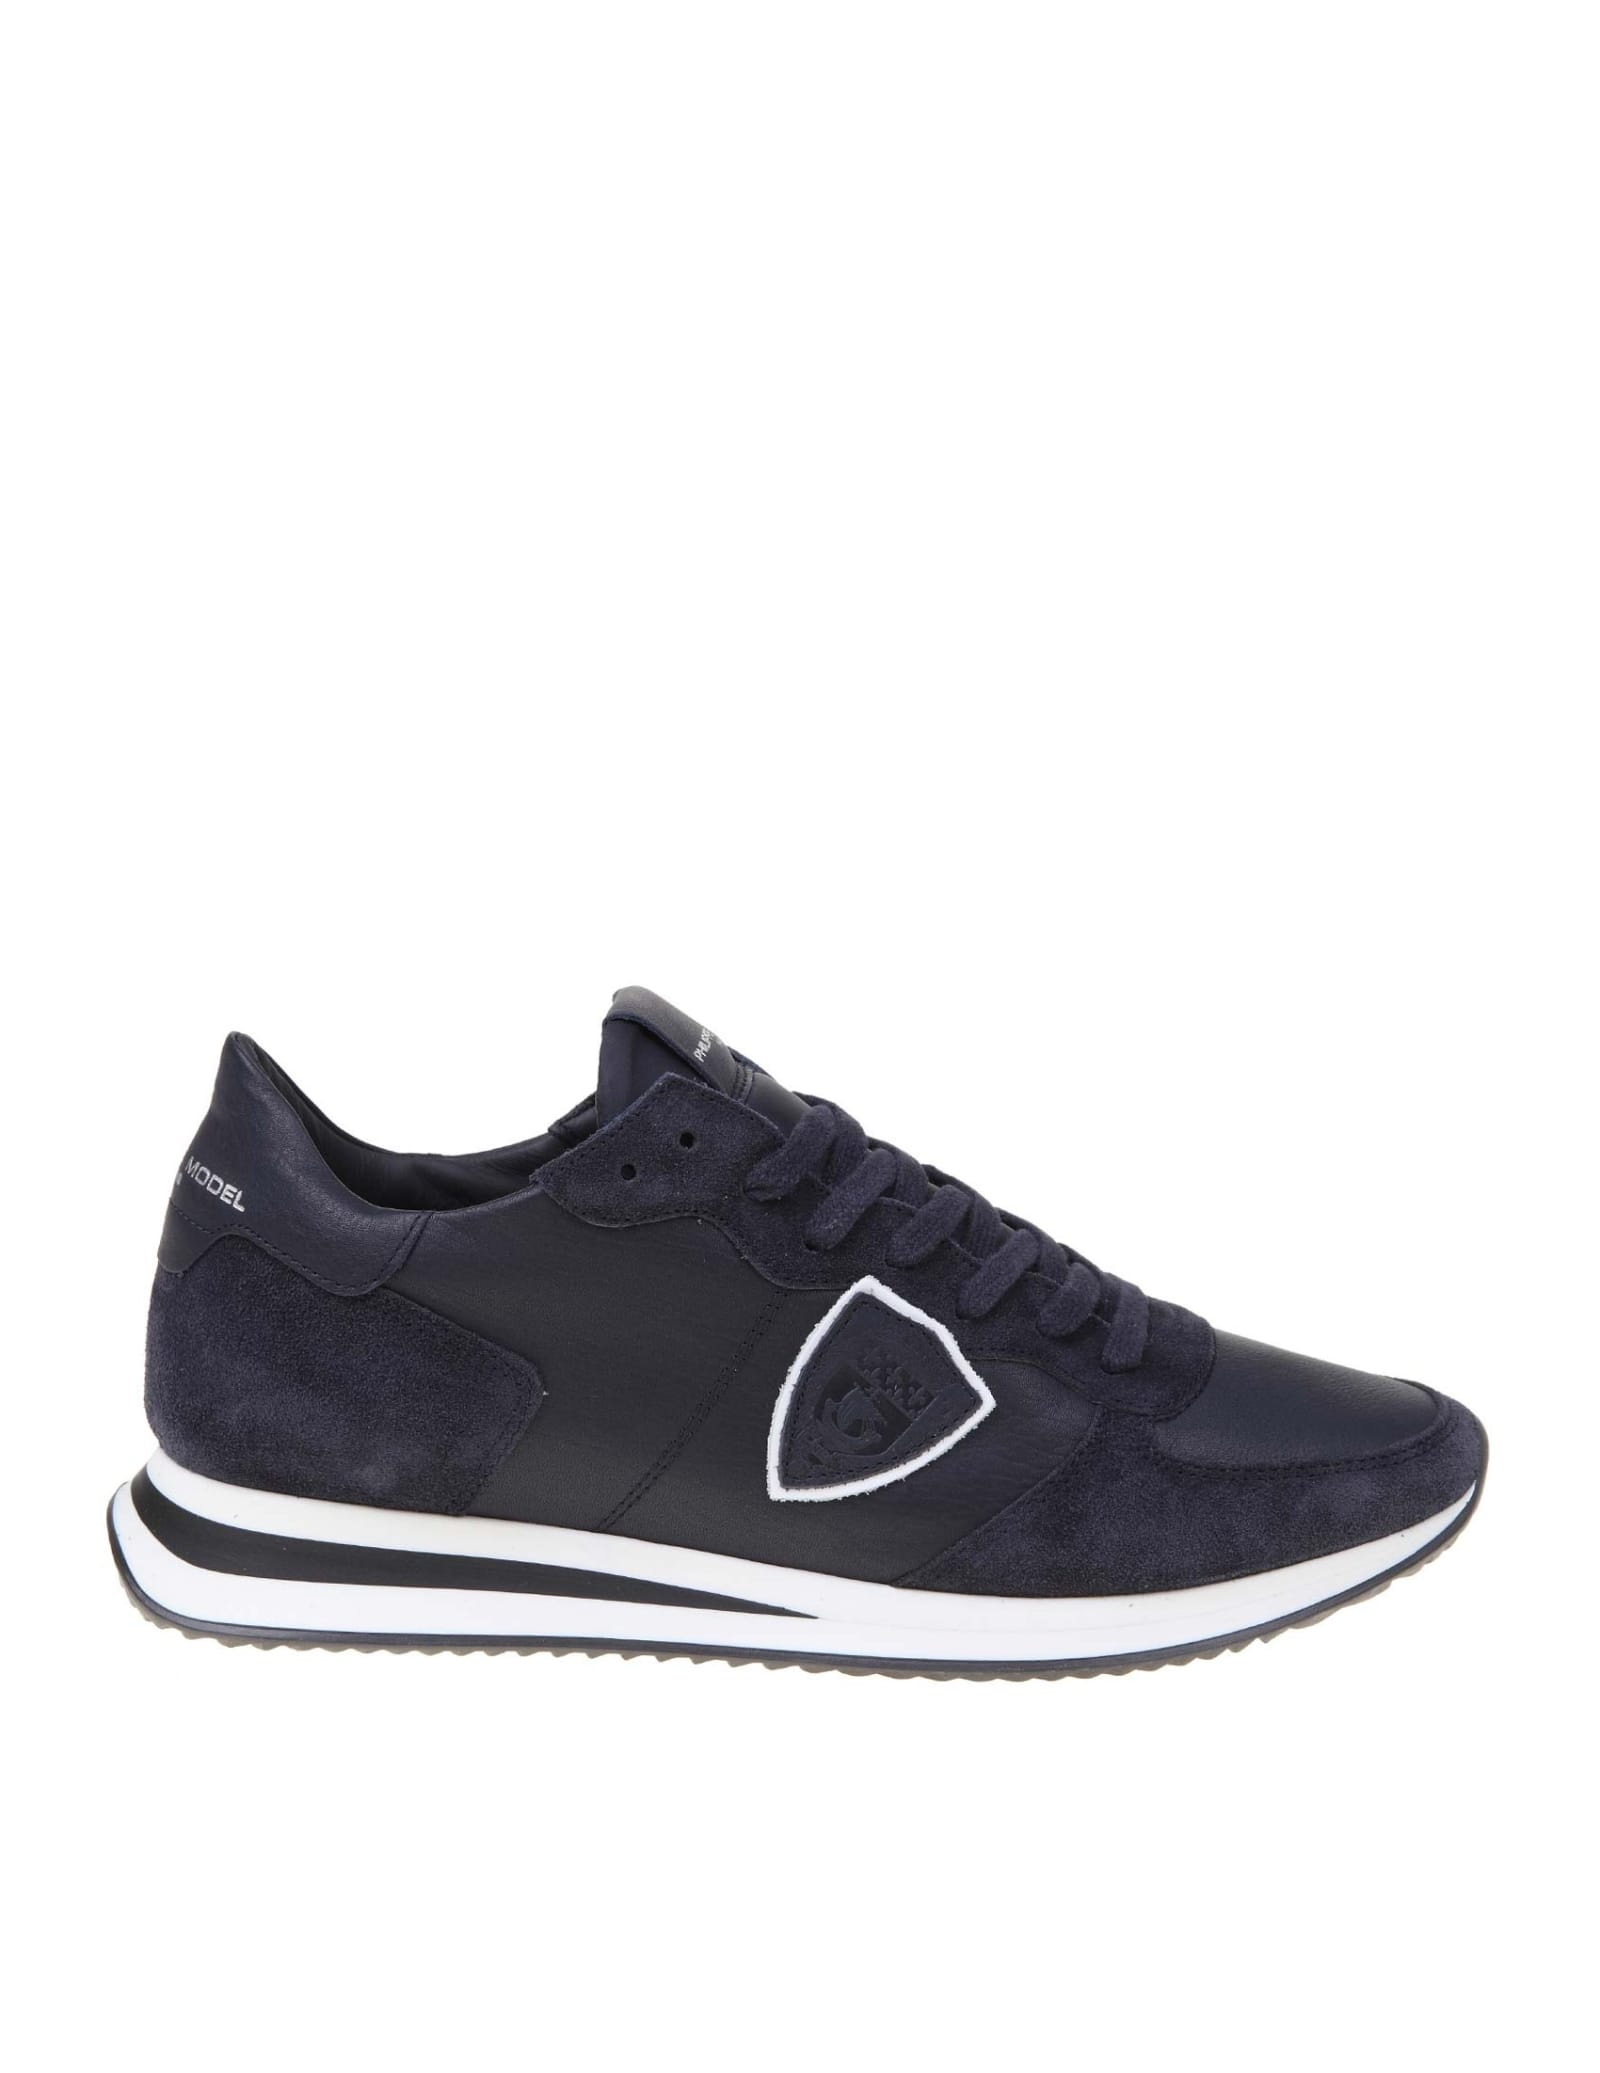 Philippe Model Trpx Leather And Suede Sneakers